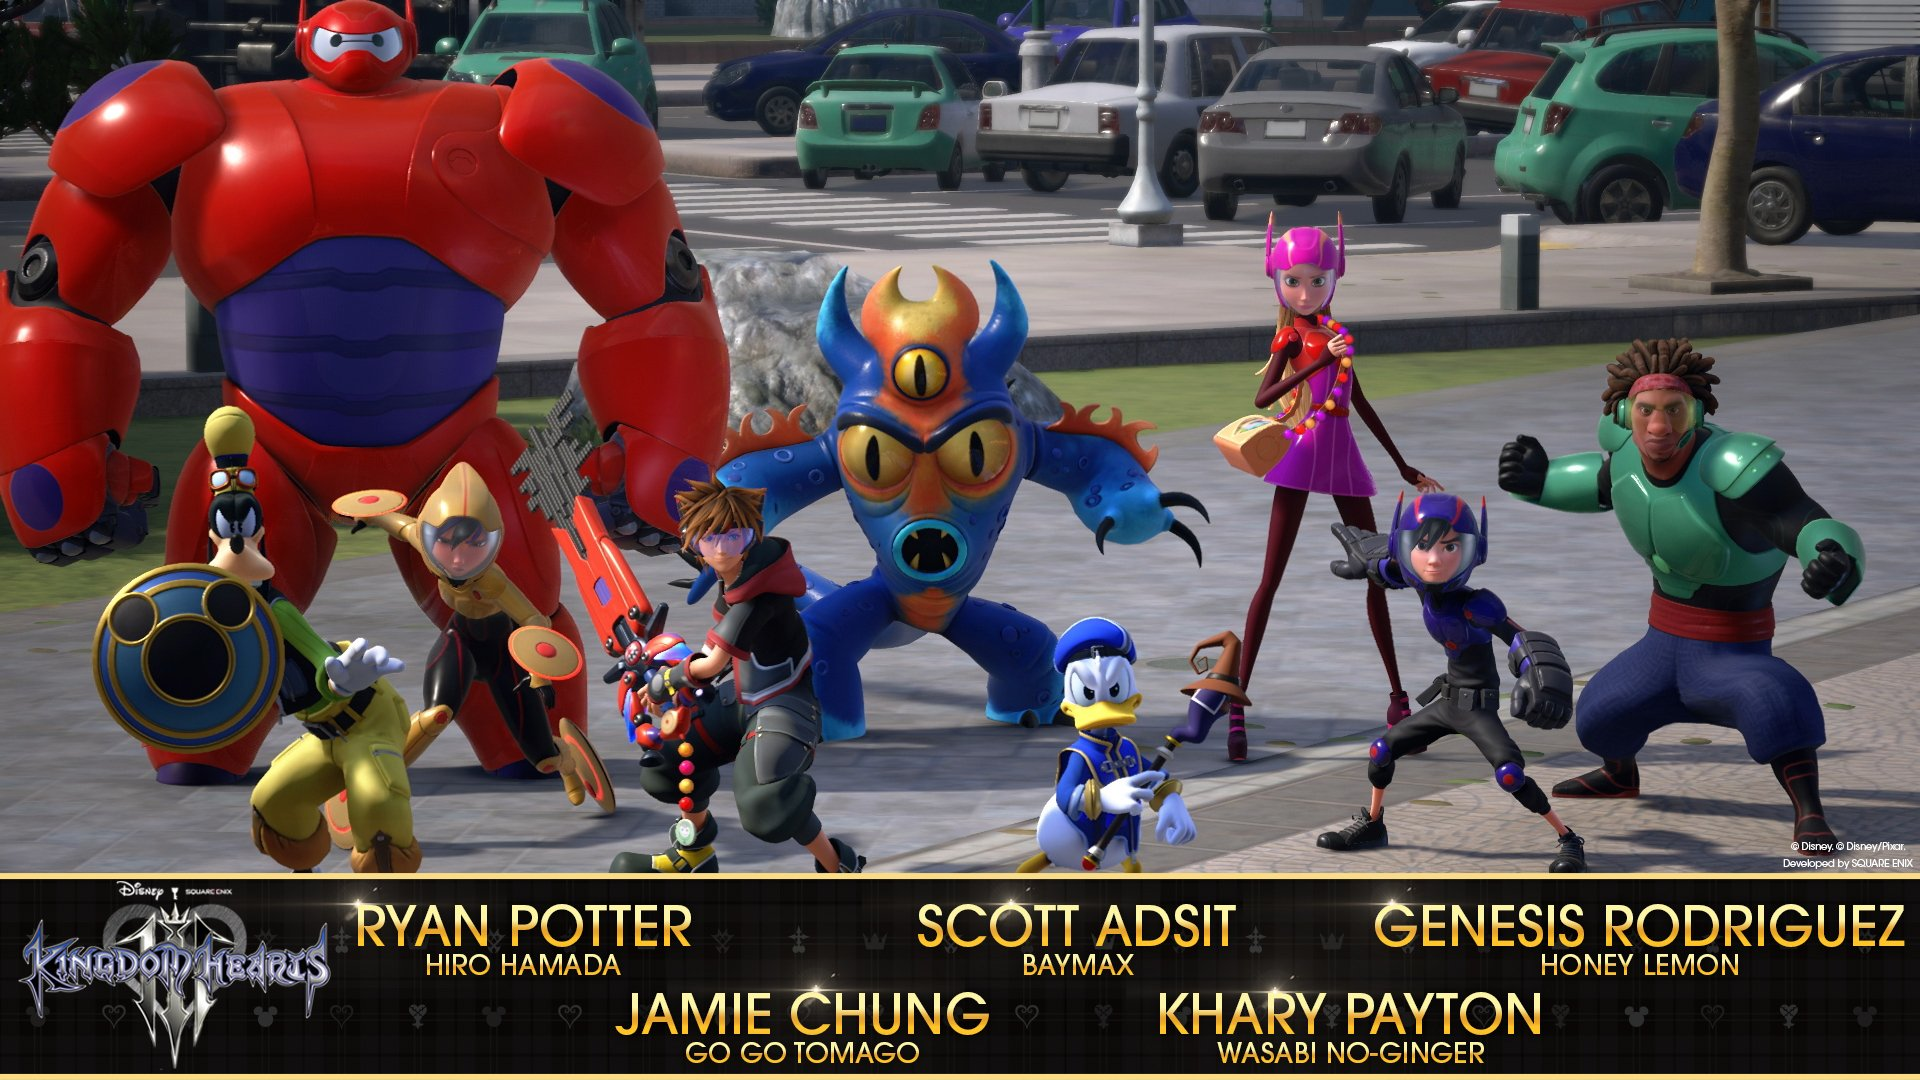 Big Hero 6 cast in Kingdom Hearts III